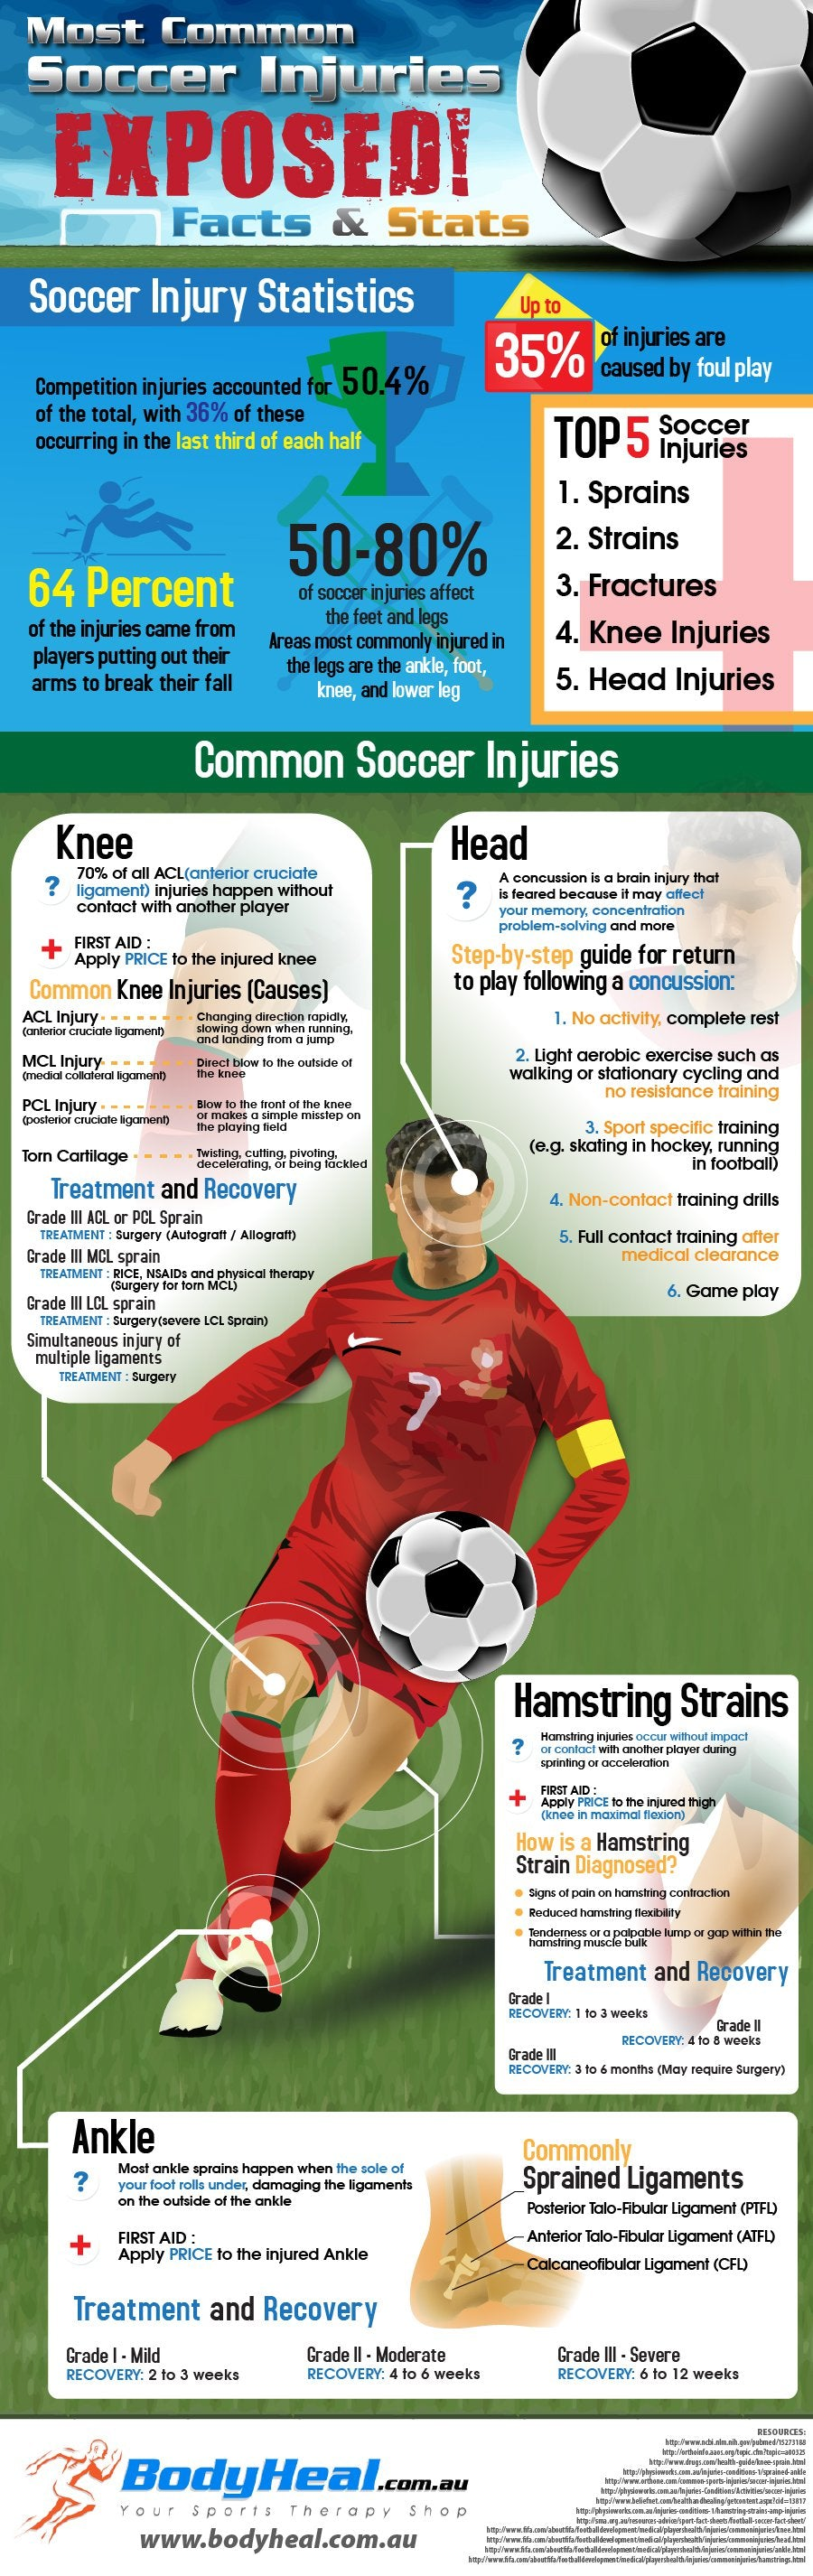 infographic on the top 5 common soccer injuries